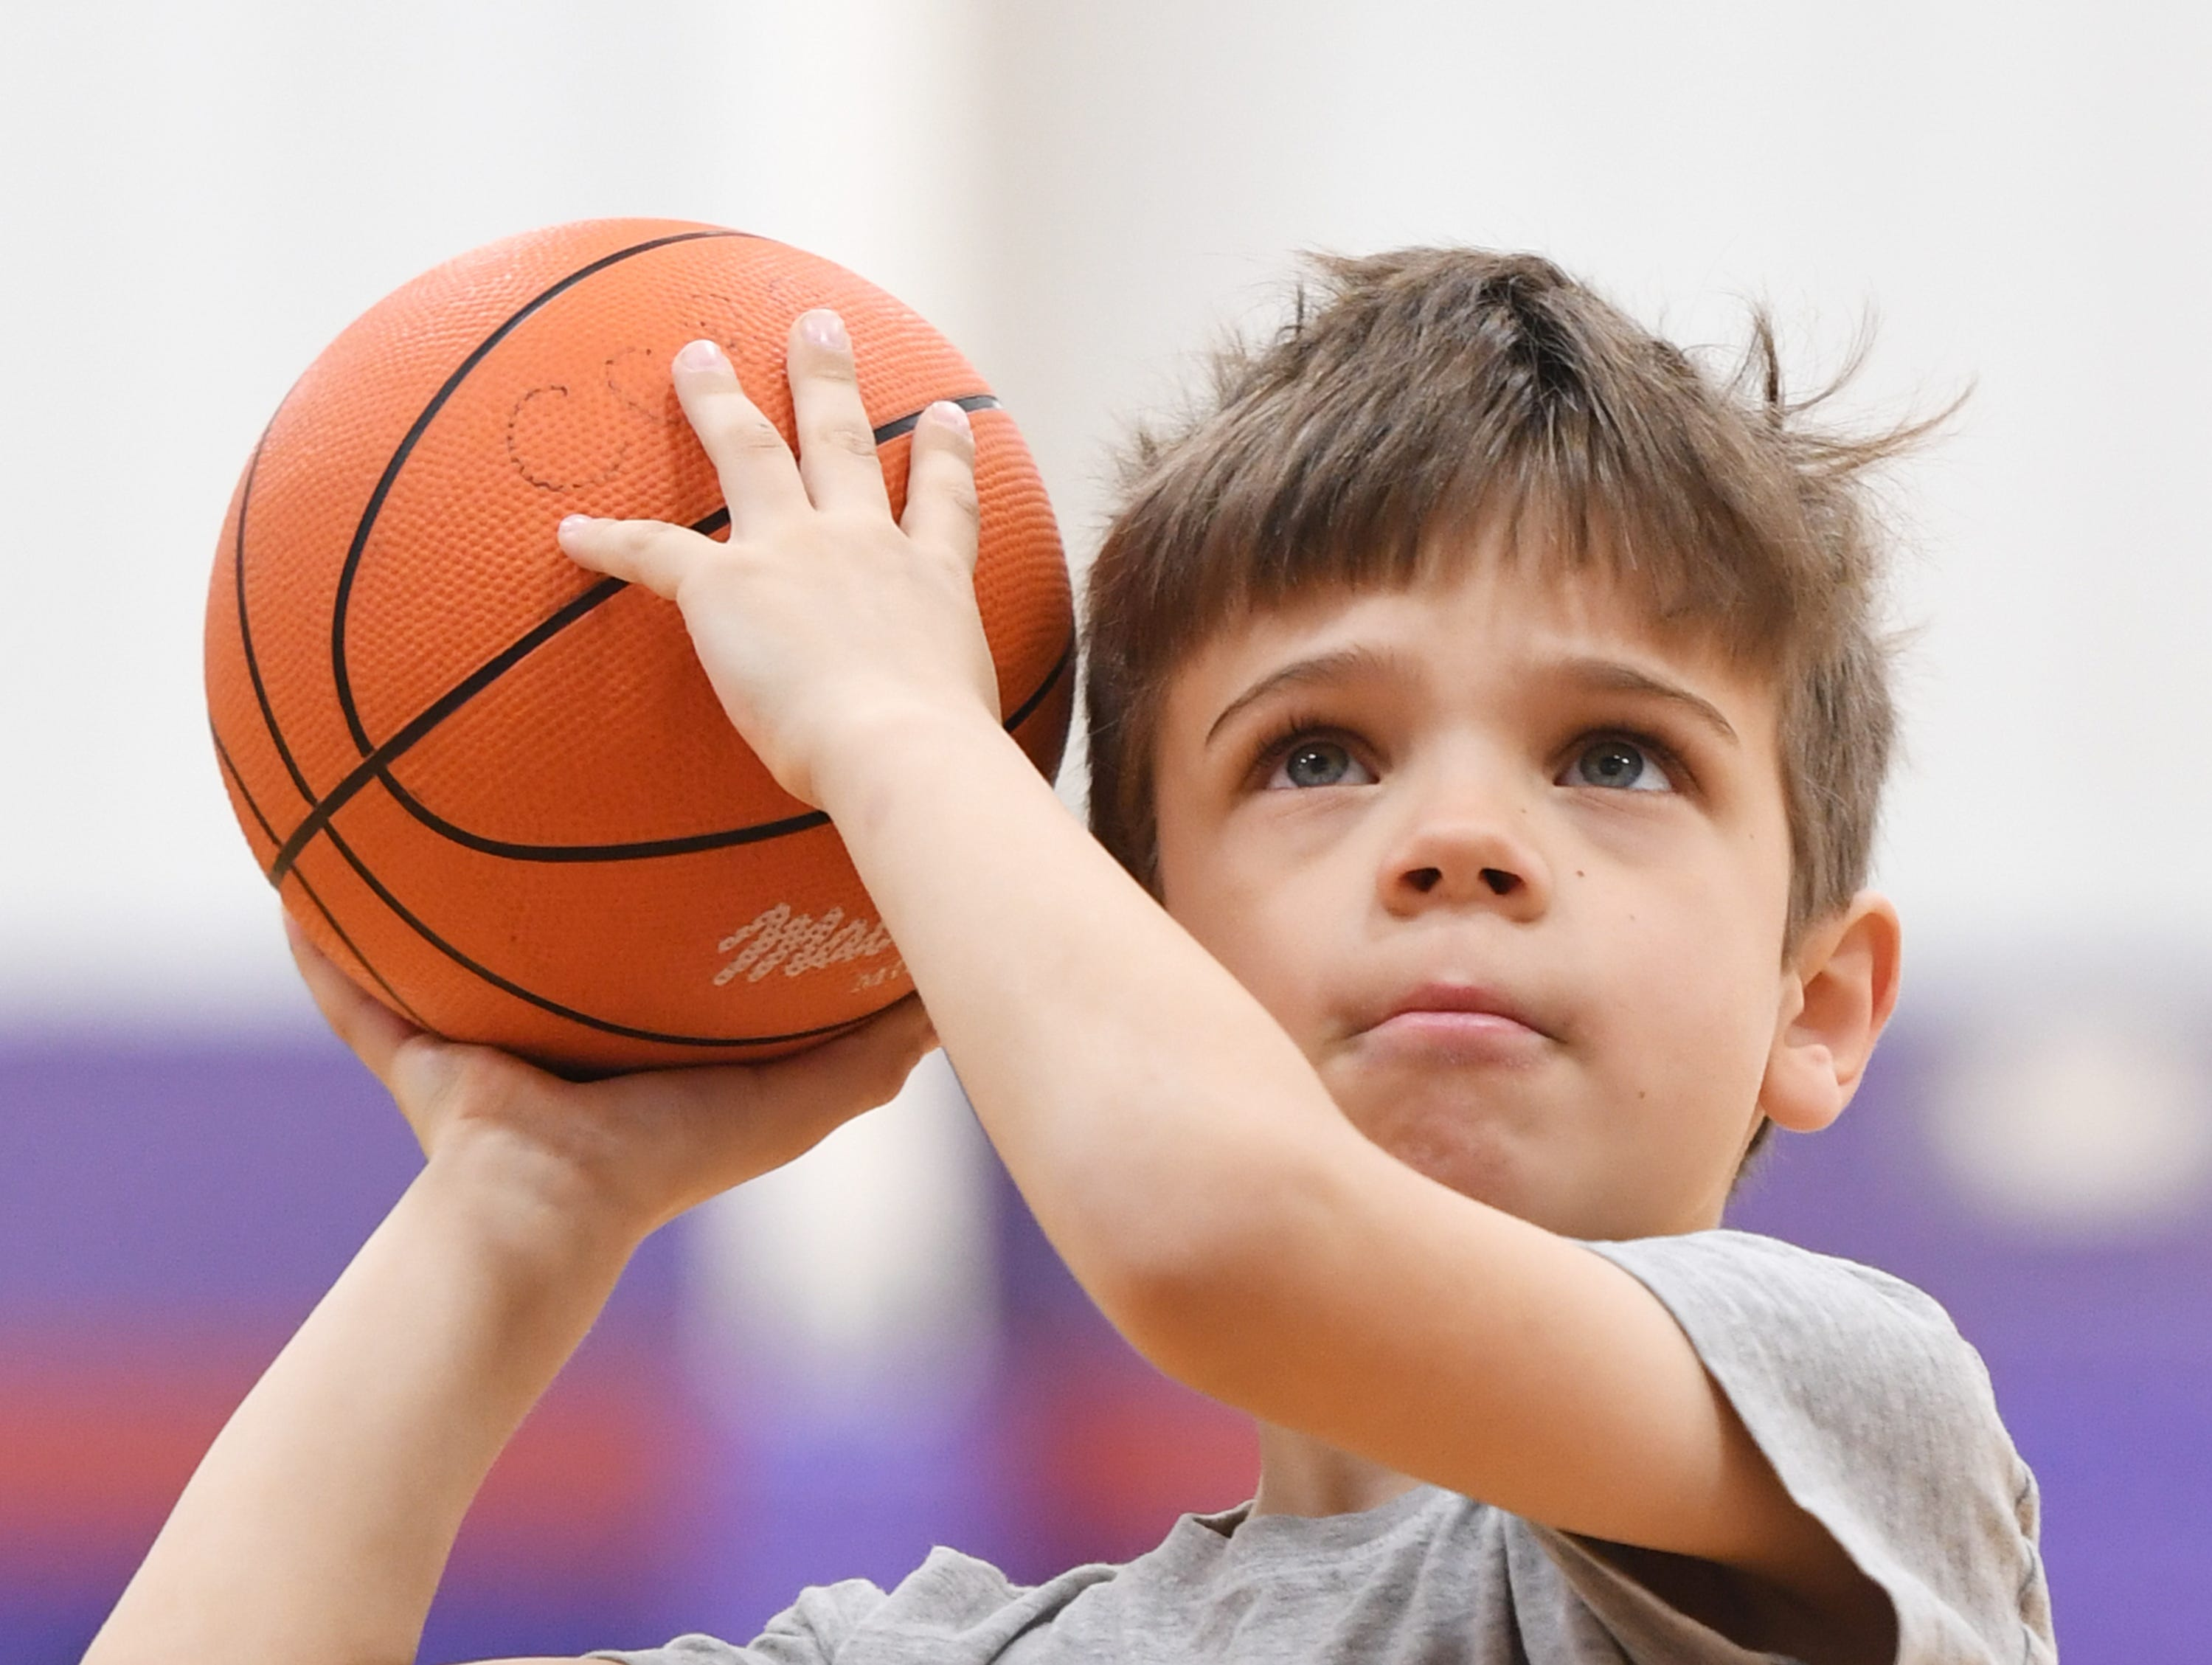 Filip Ziolkowski, 6, practices his shooting at Central-Clemson Recreational Center Saturday, Feb. 2, 2019.